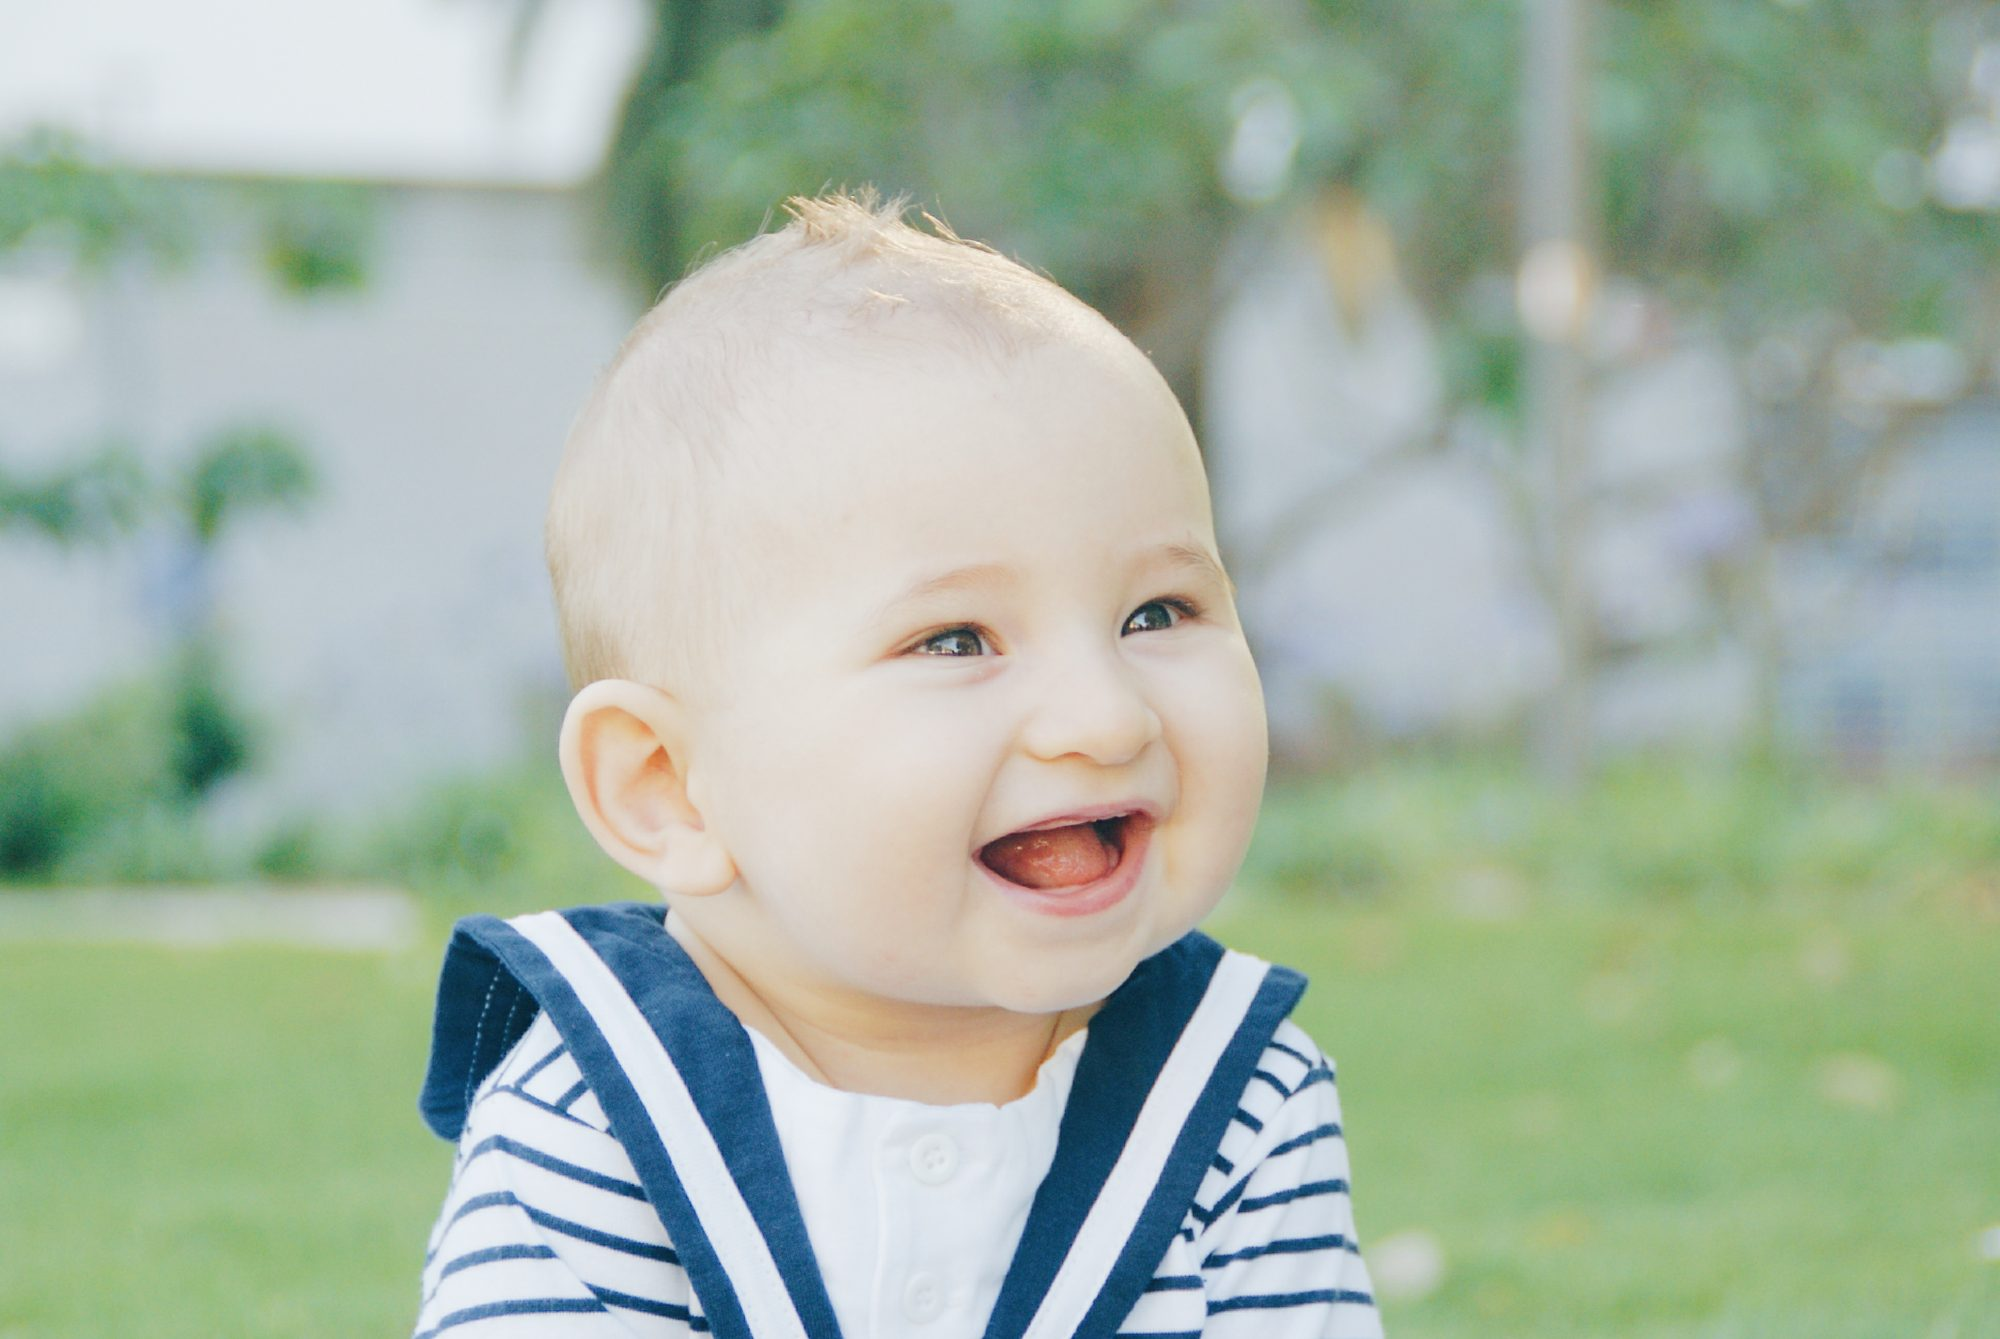 Baby Laughing Outdoors